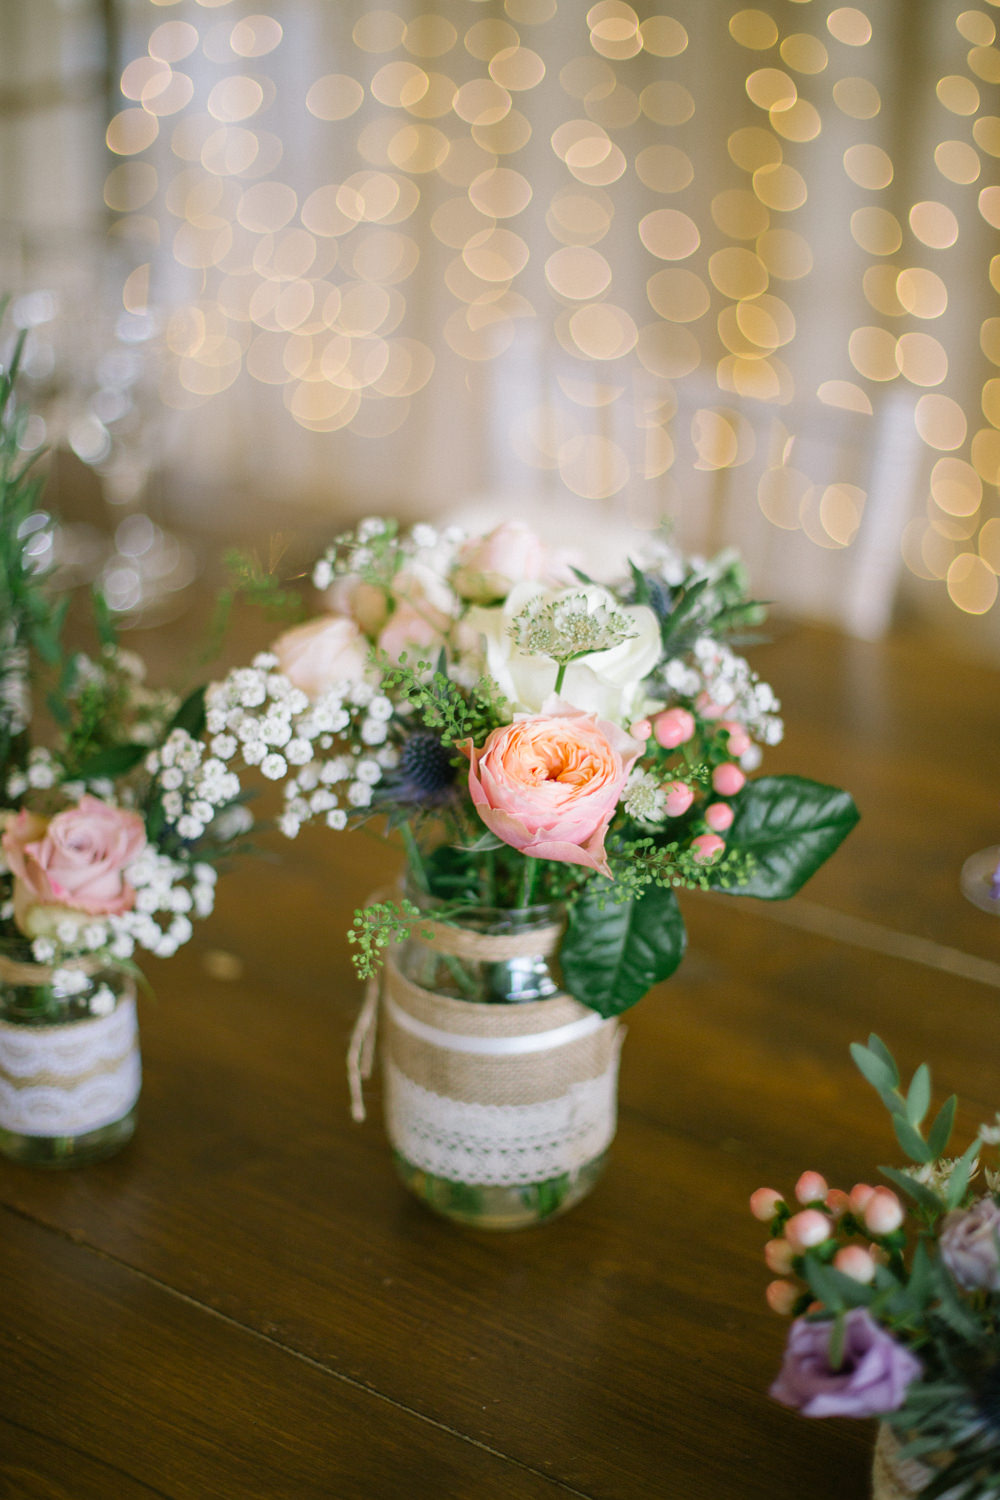 Burlap Hessian Jam Jar Flowers Floral Lace Barn At Barra Castle Wedding Ceranna Photography